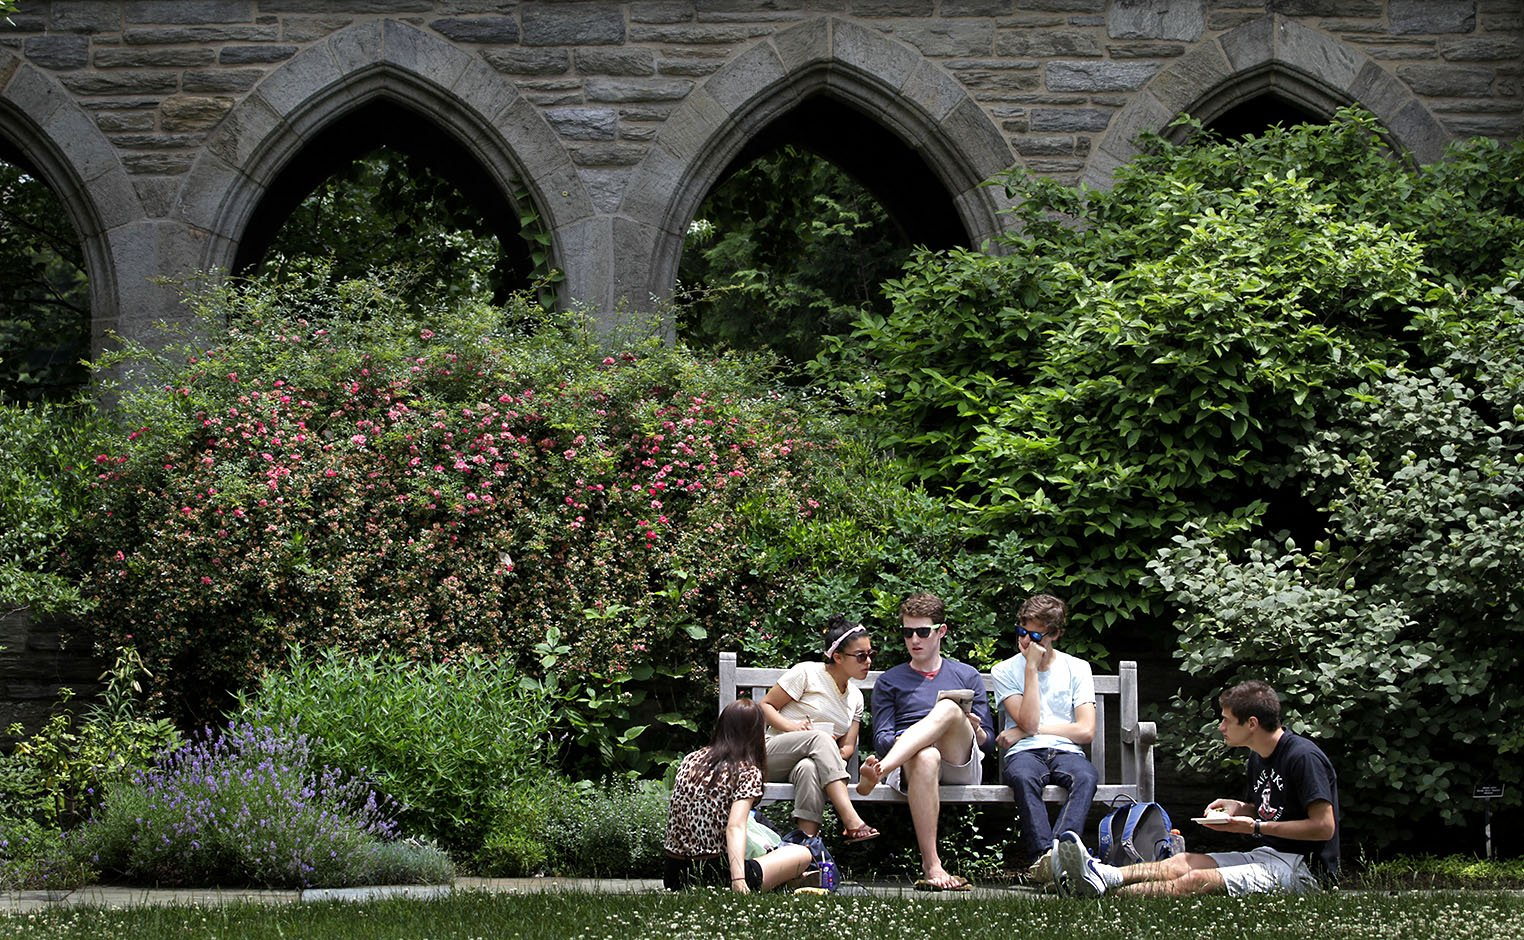 Students in courtyard garden